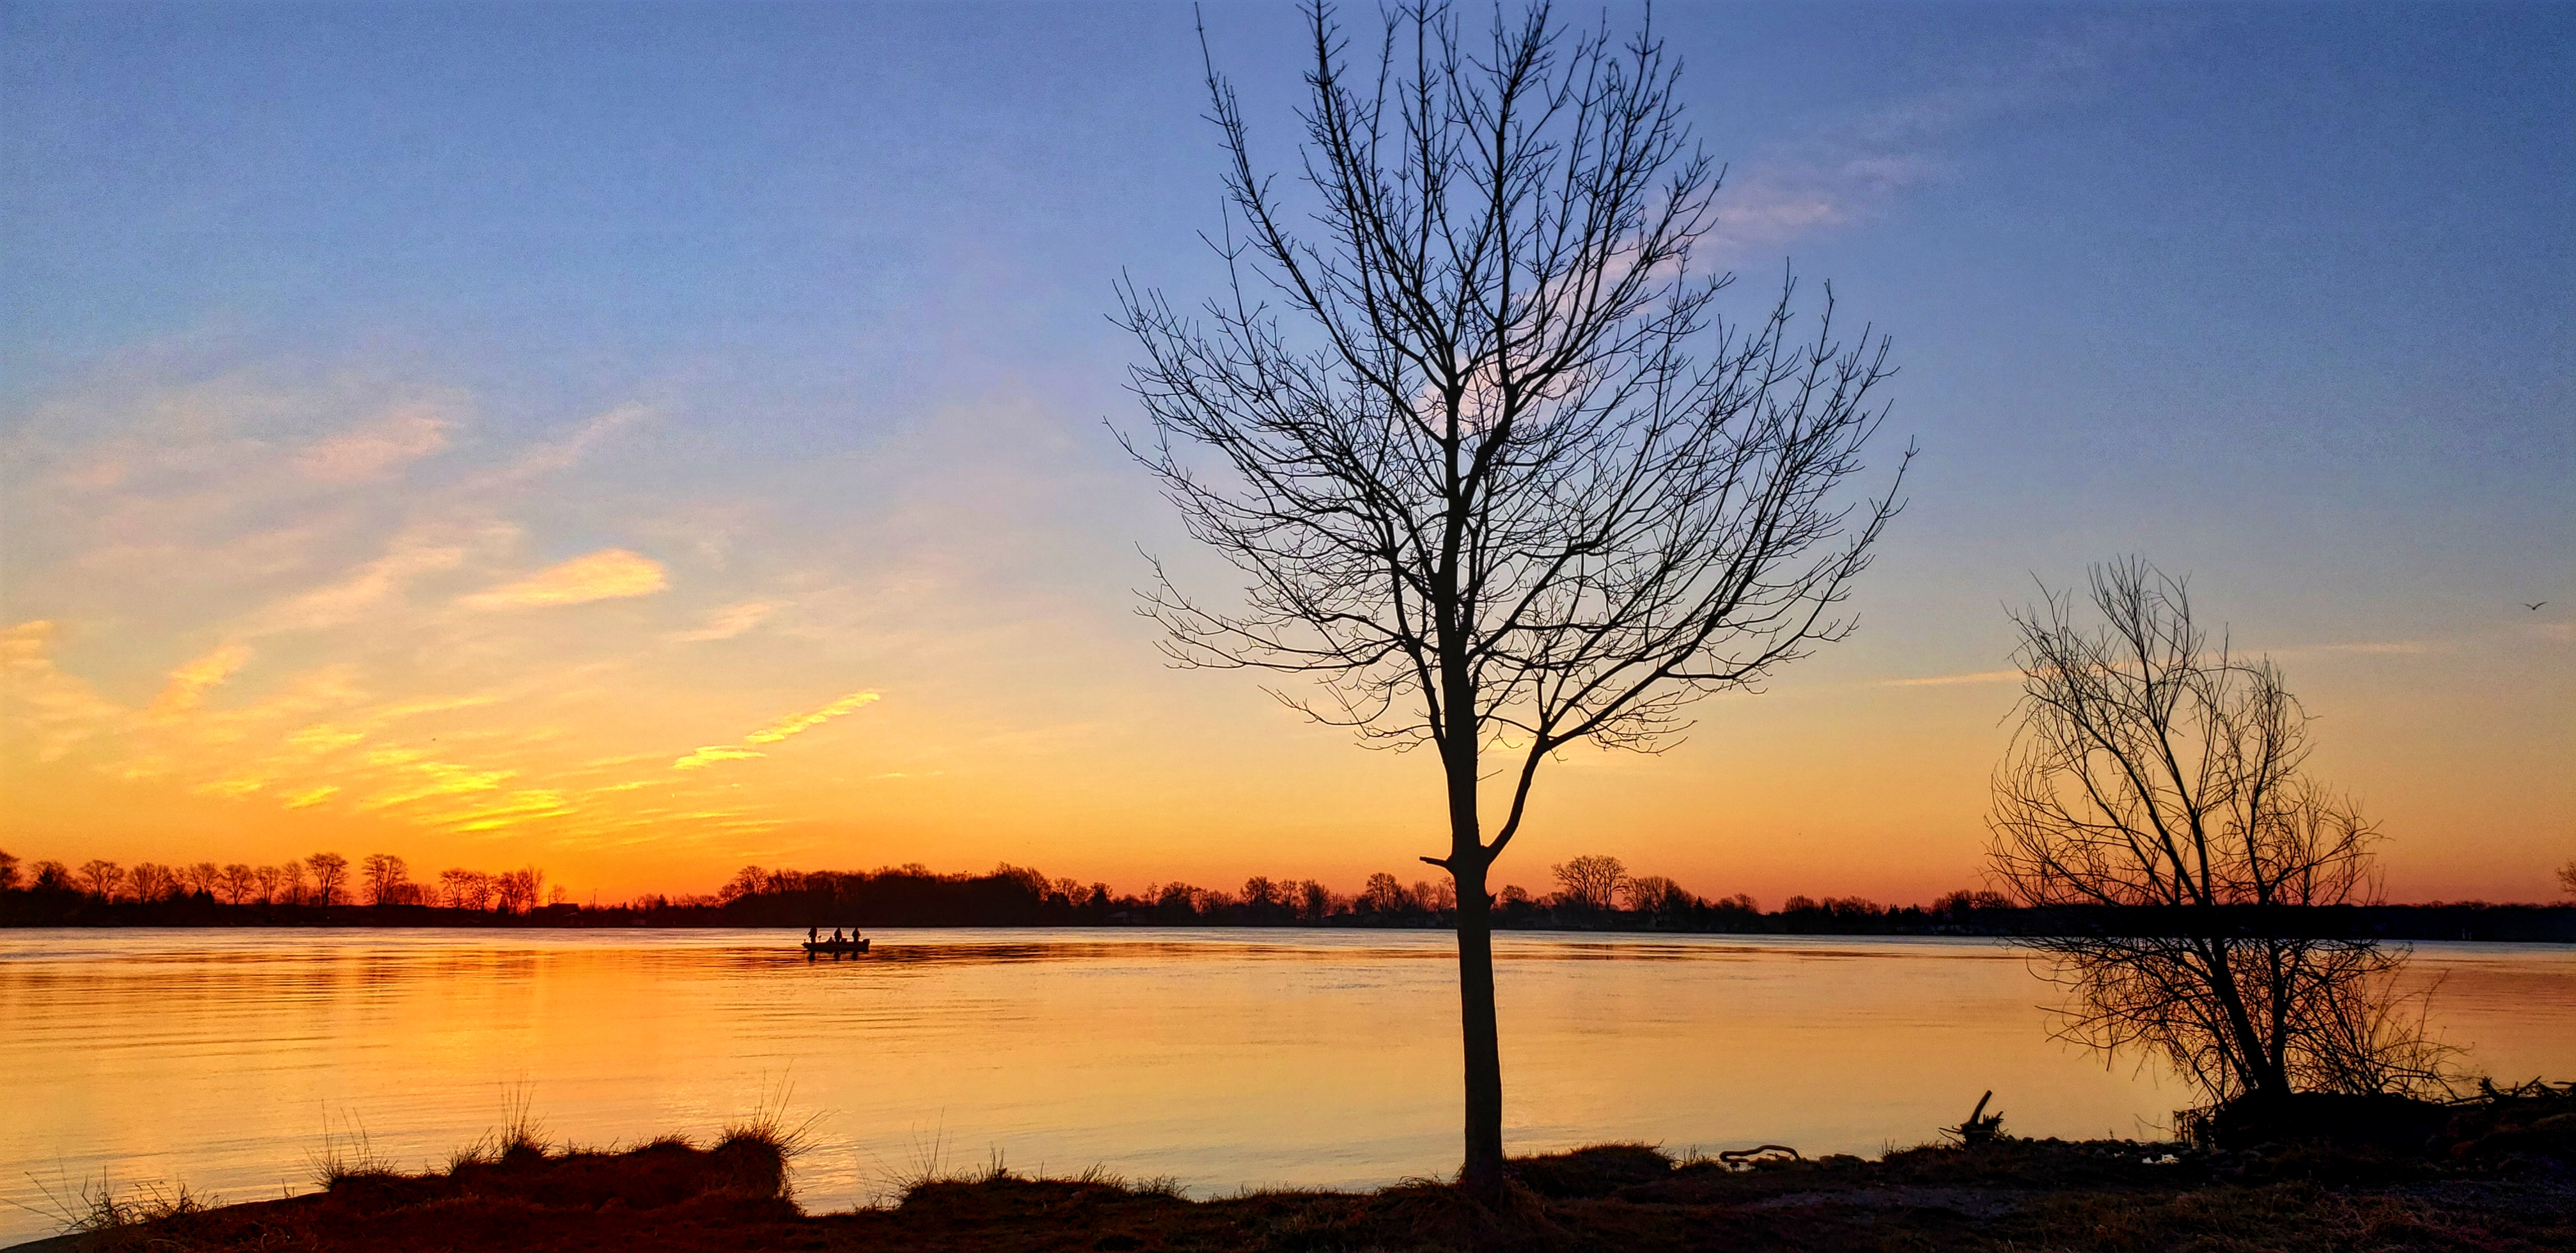 A silhouette of a tree as the sun rises over the St.Clair River. In the background there is a boat.